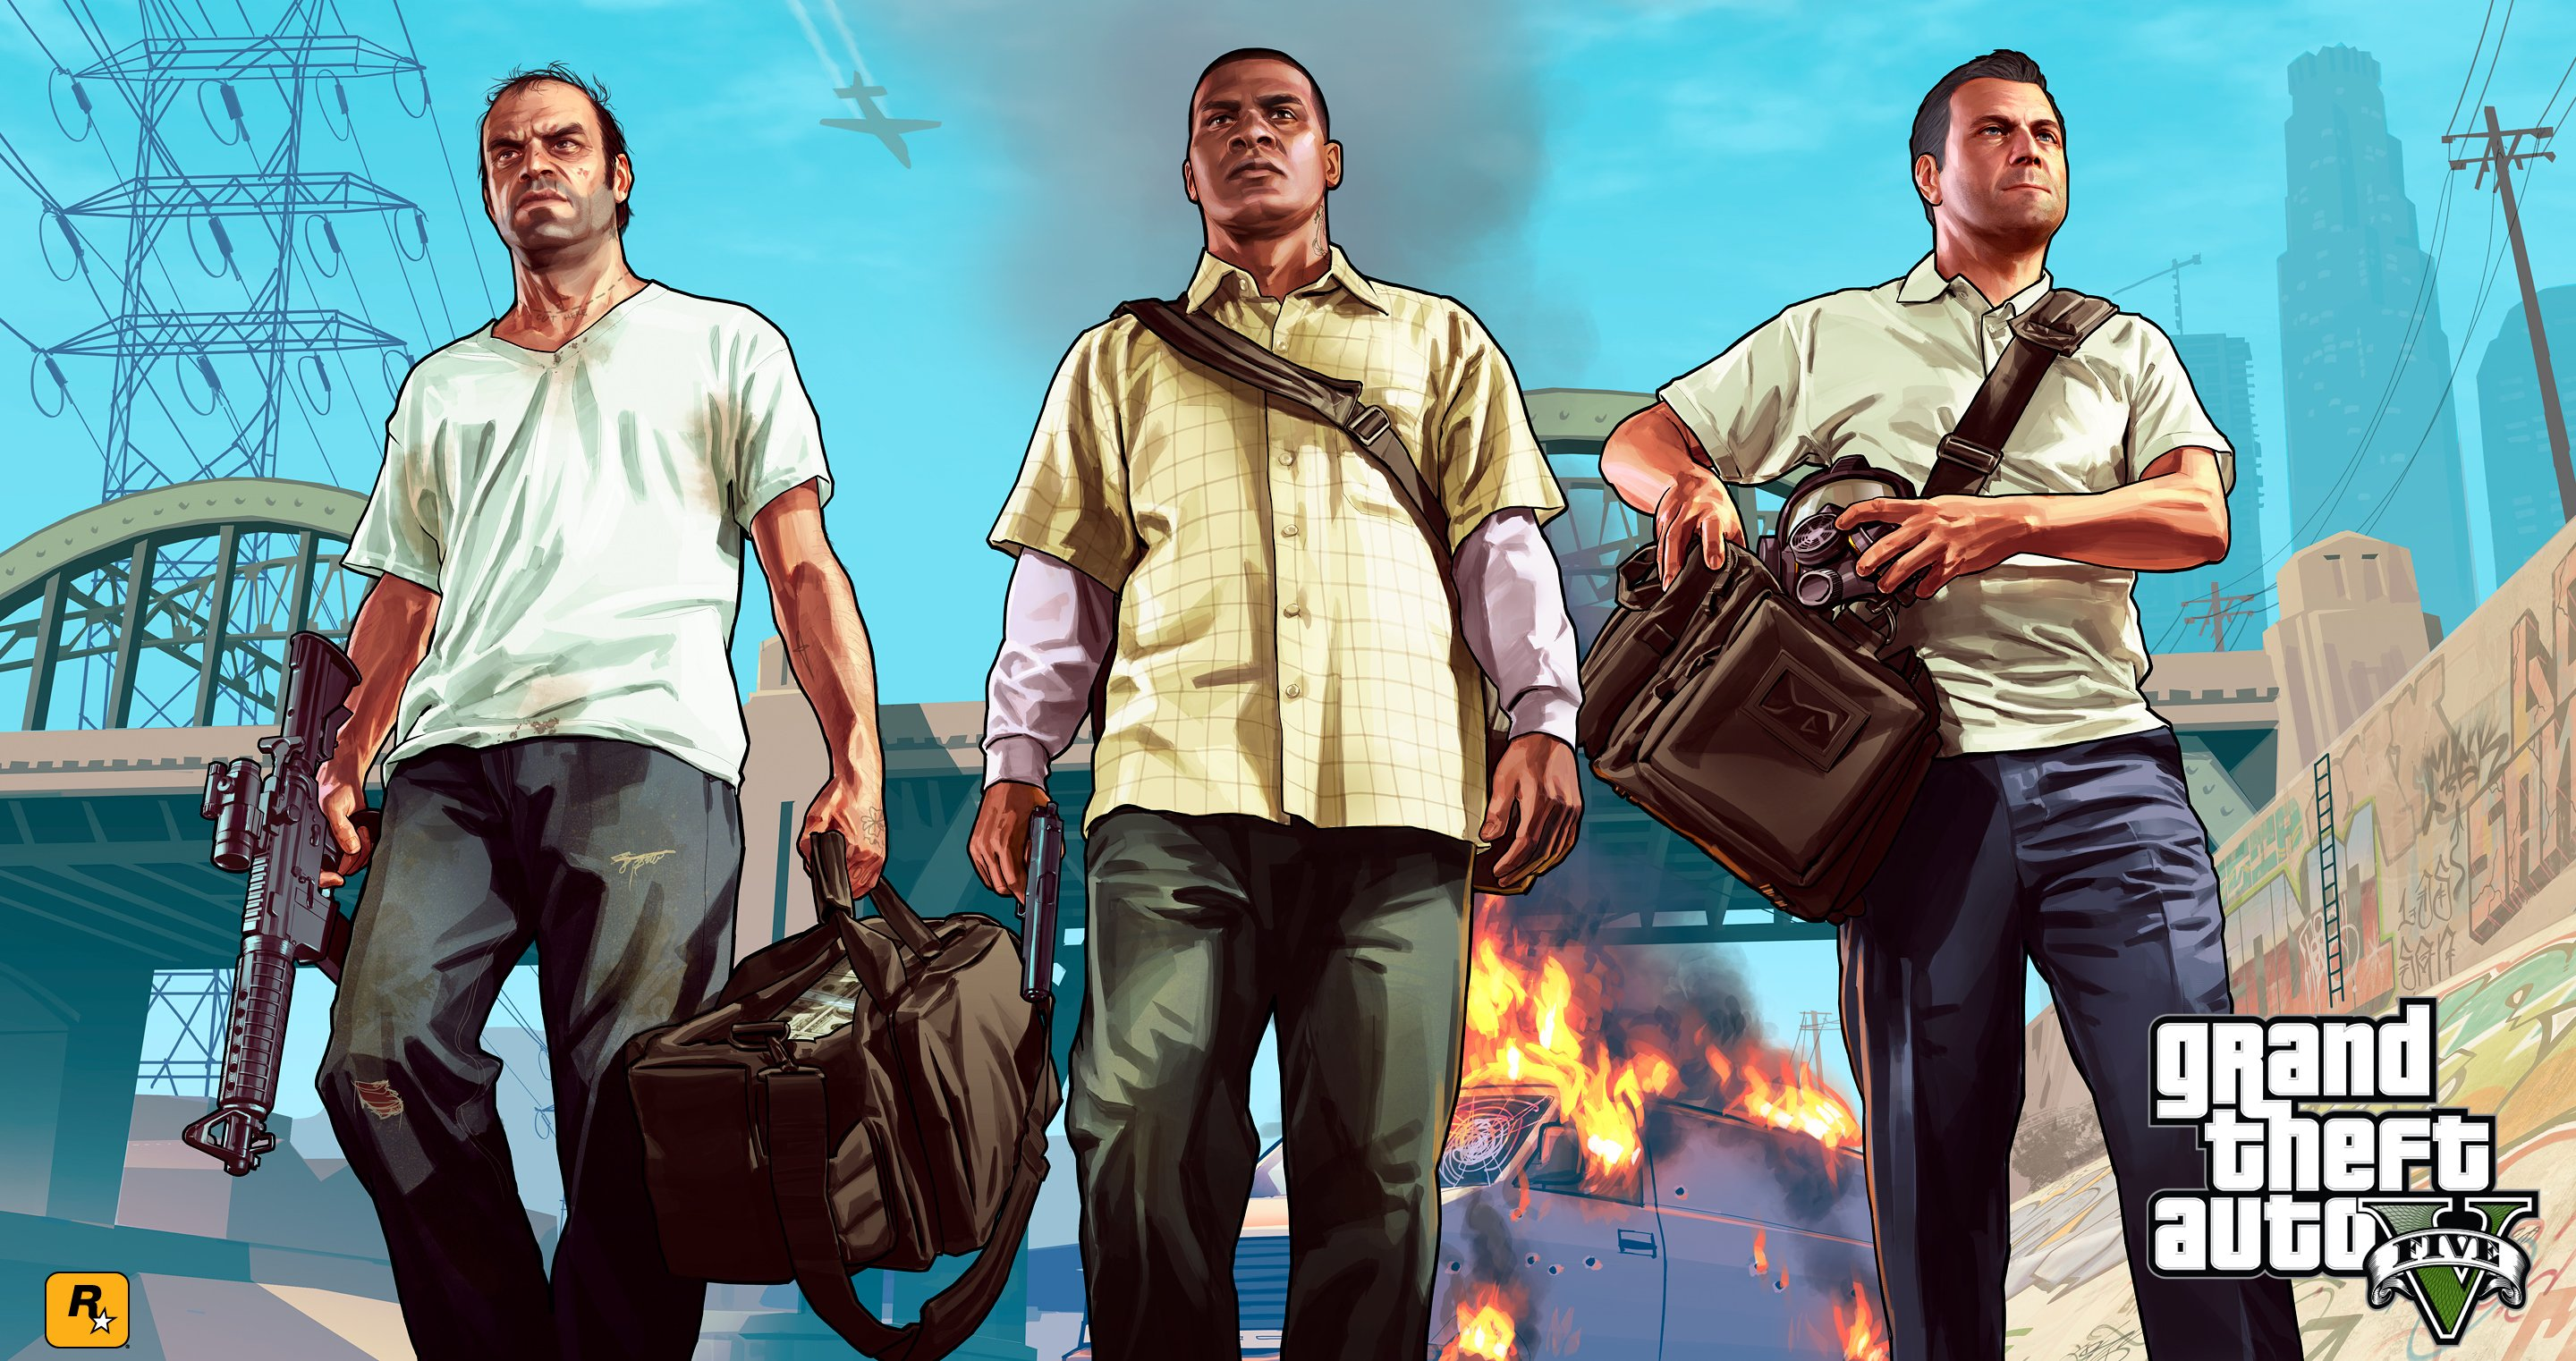 Grand Theft Auto V release date is September 17